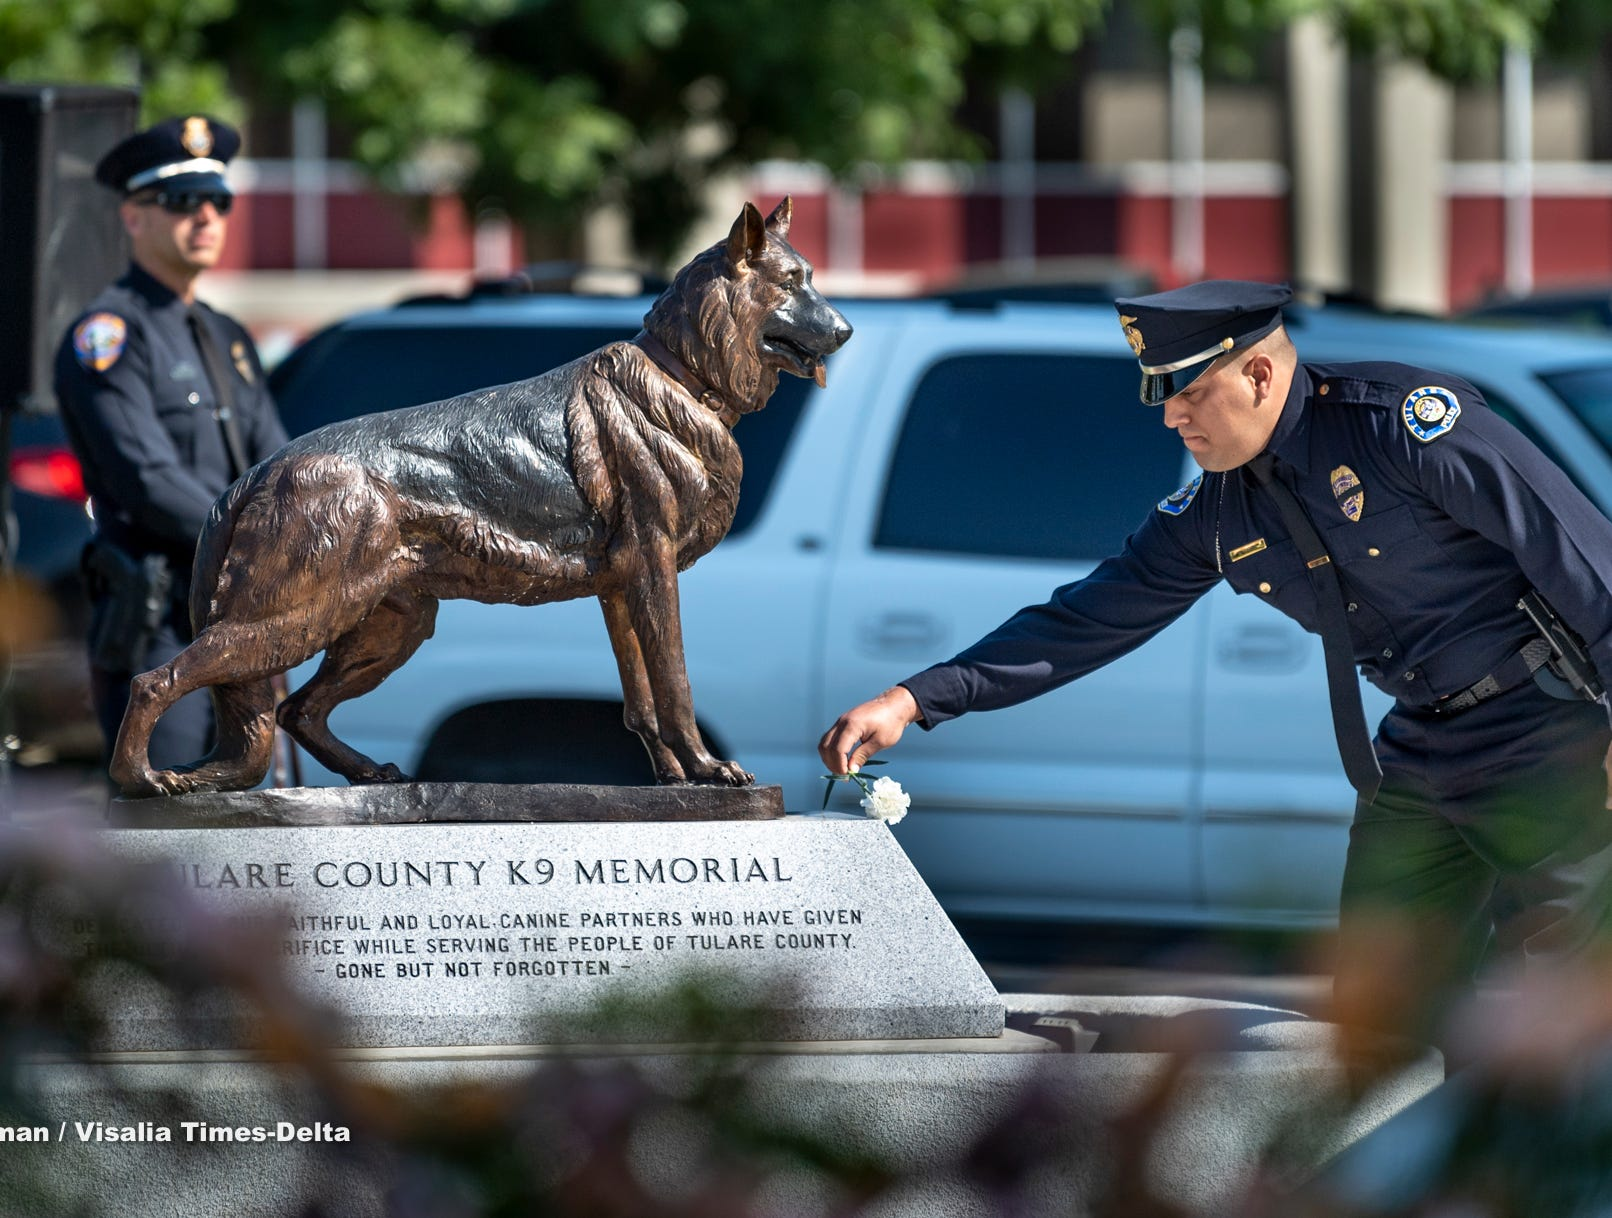 Tulare Police officer Ryan Garcia places a carnation at the memorial for his partner K-9 Bane during the Tulare County Peace Officer Memorial Ceremony on Wednesday, May 8, 2019. Bane was killed in the line of duty while defending Garcia late in 2018.